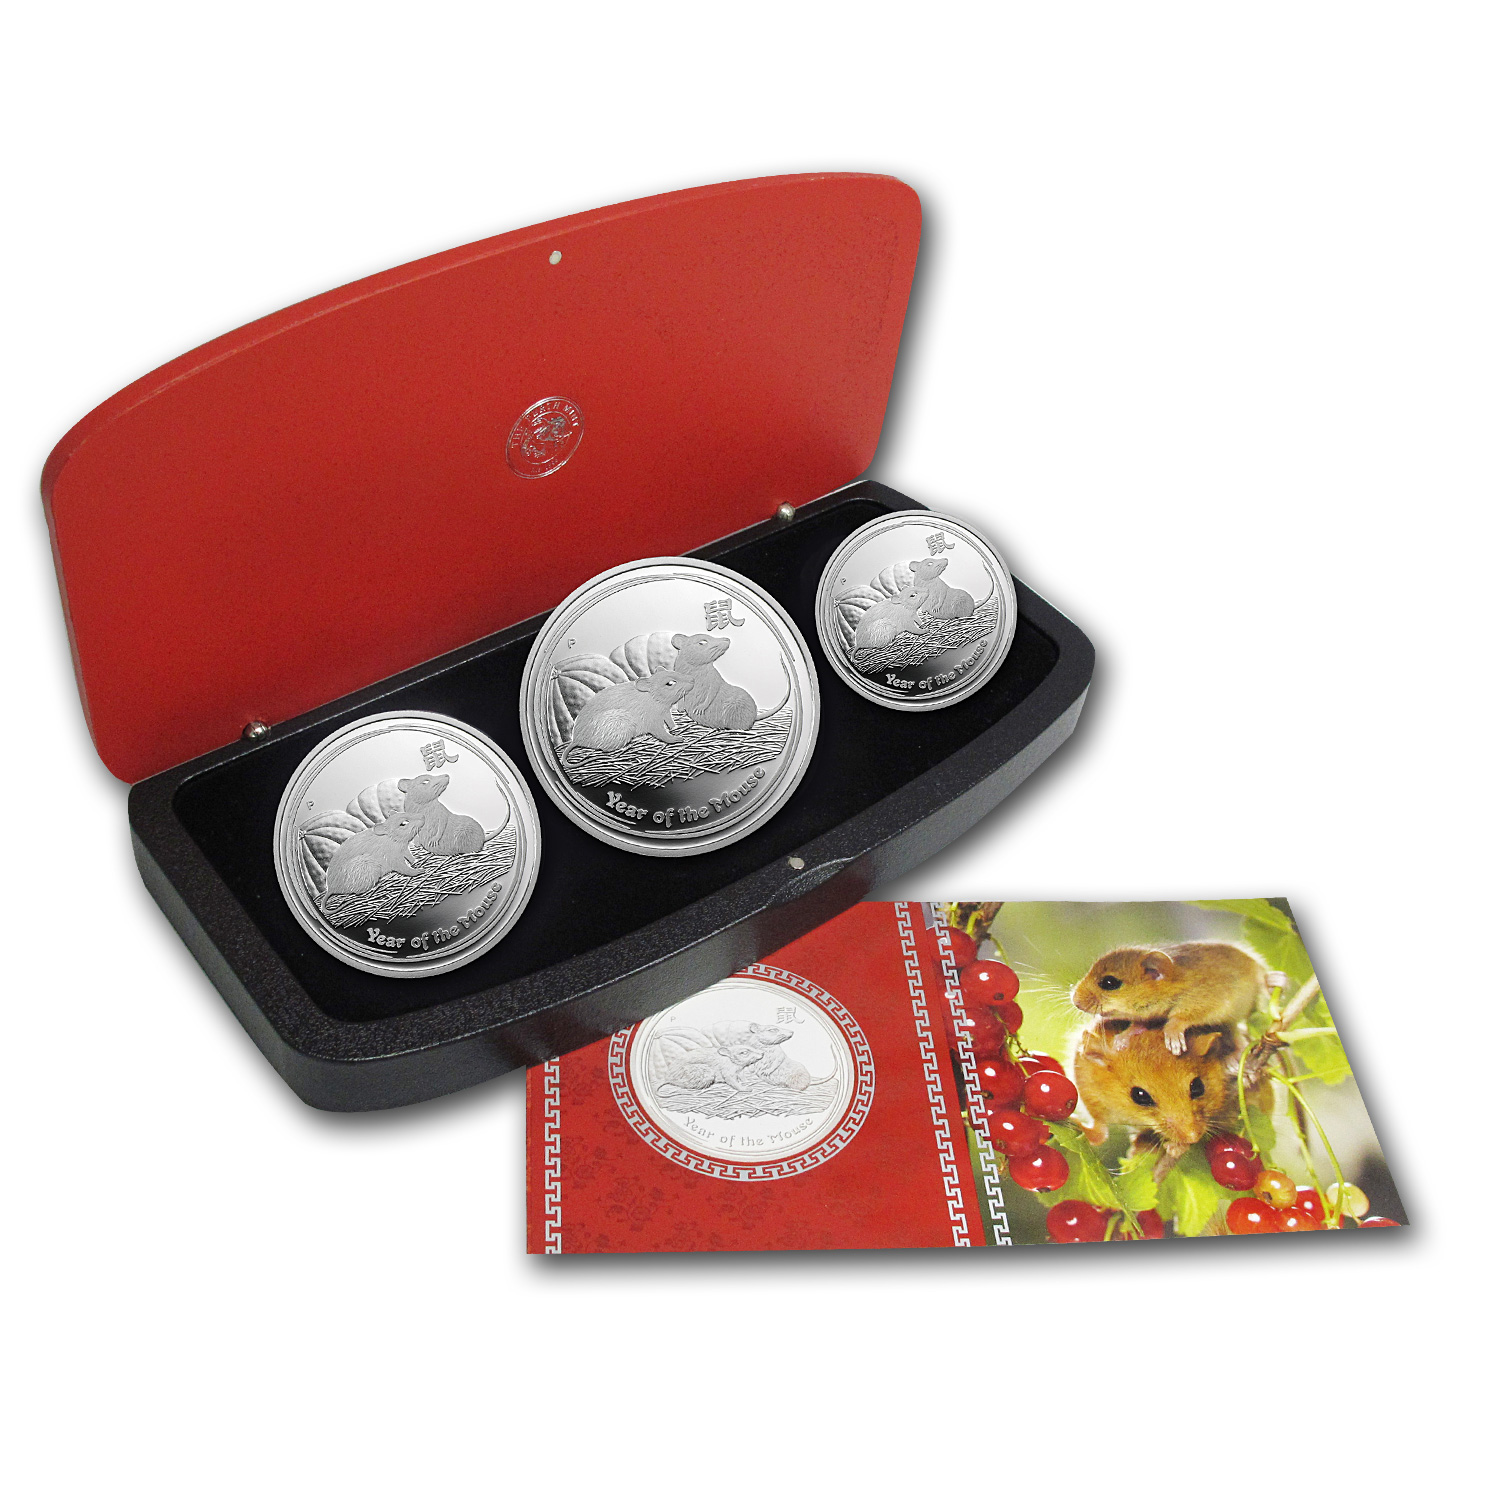 2008 3-Coin Silver Australian Year of the Mouse Proof Set